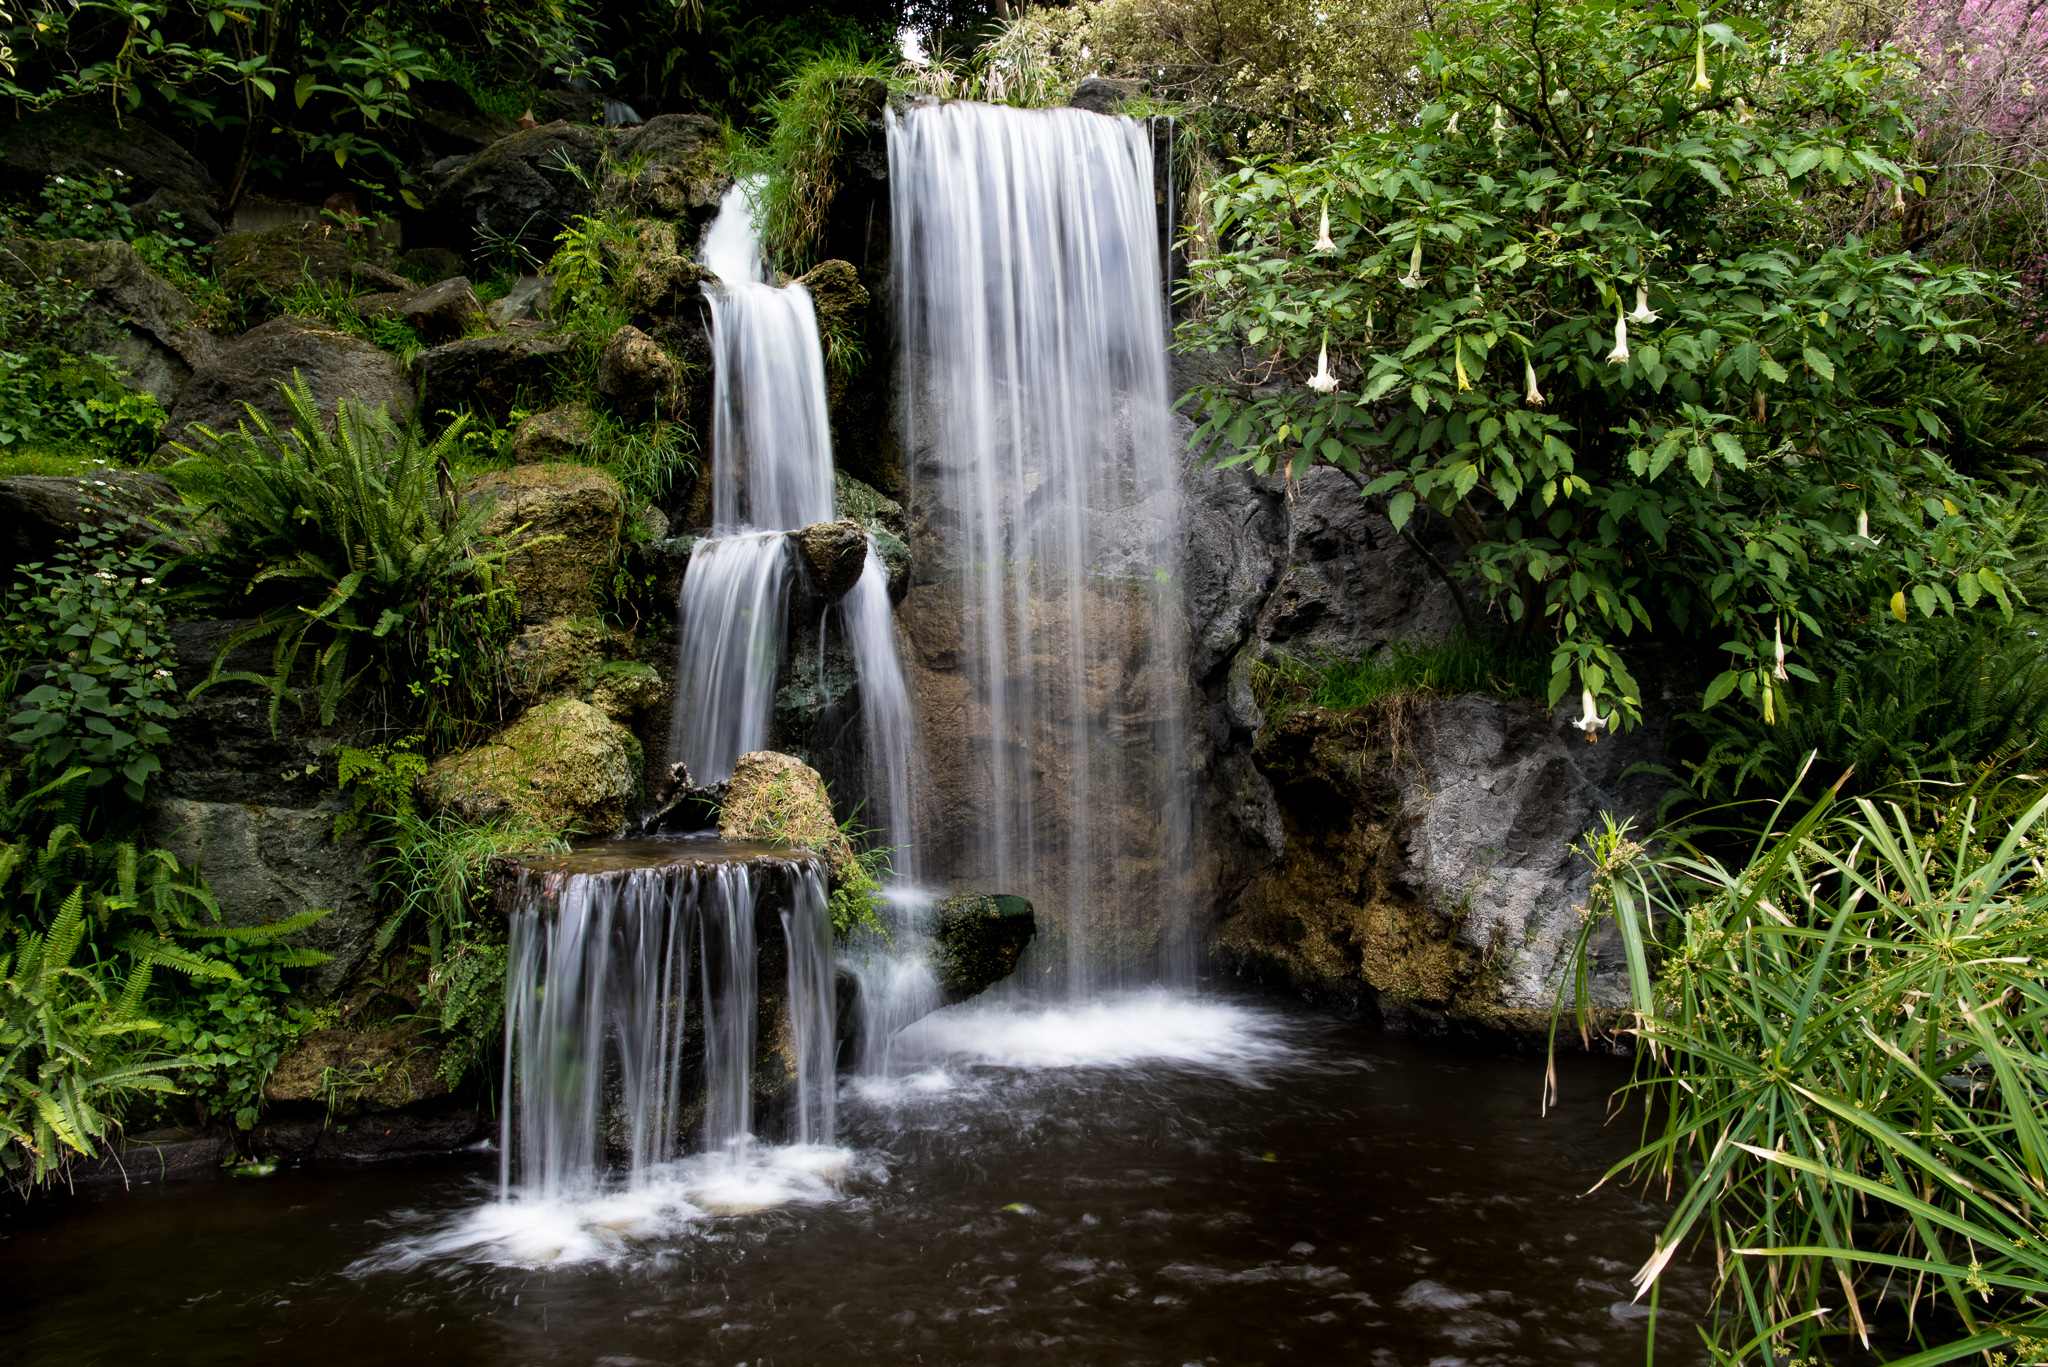 The Arcadia Arboretum Waterfall